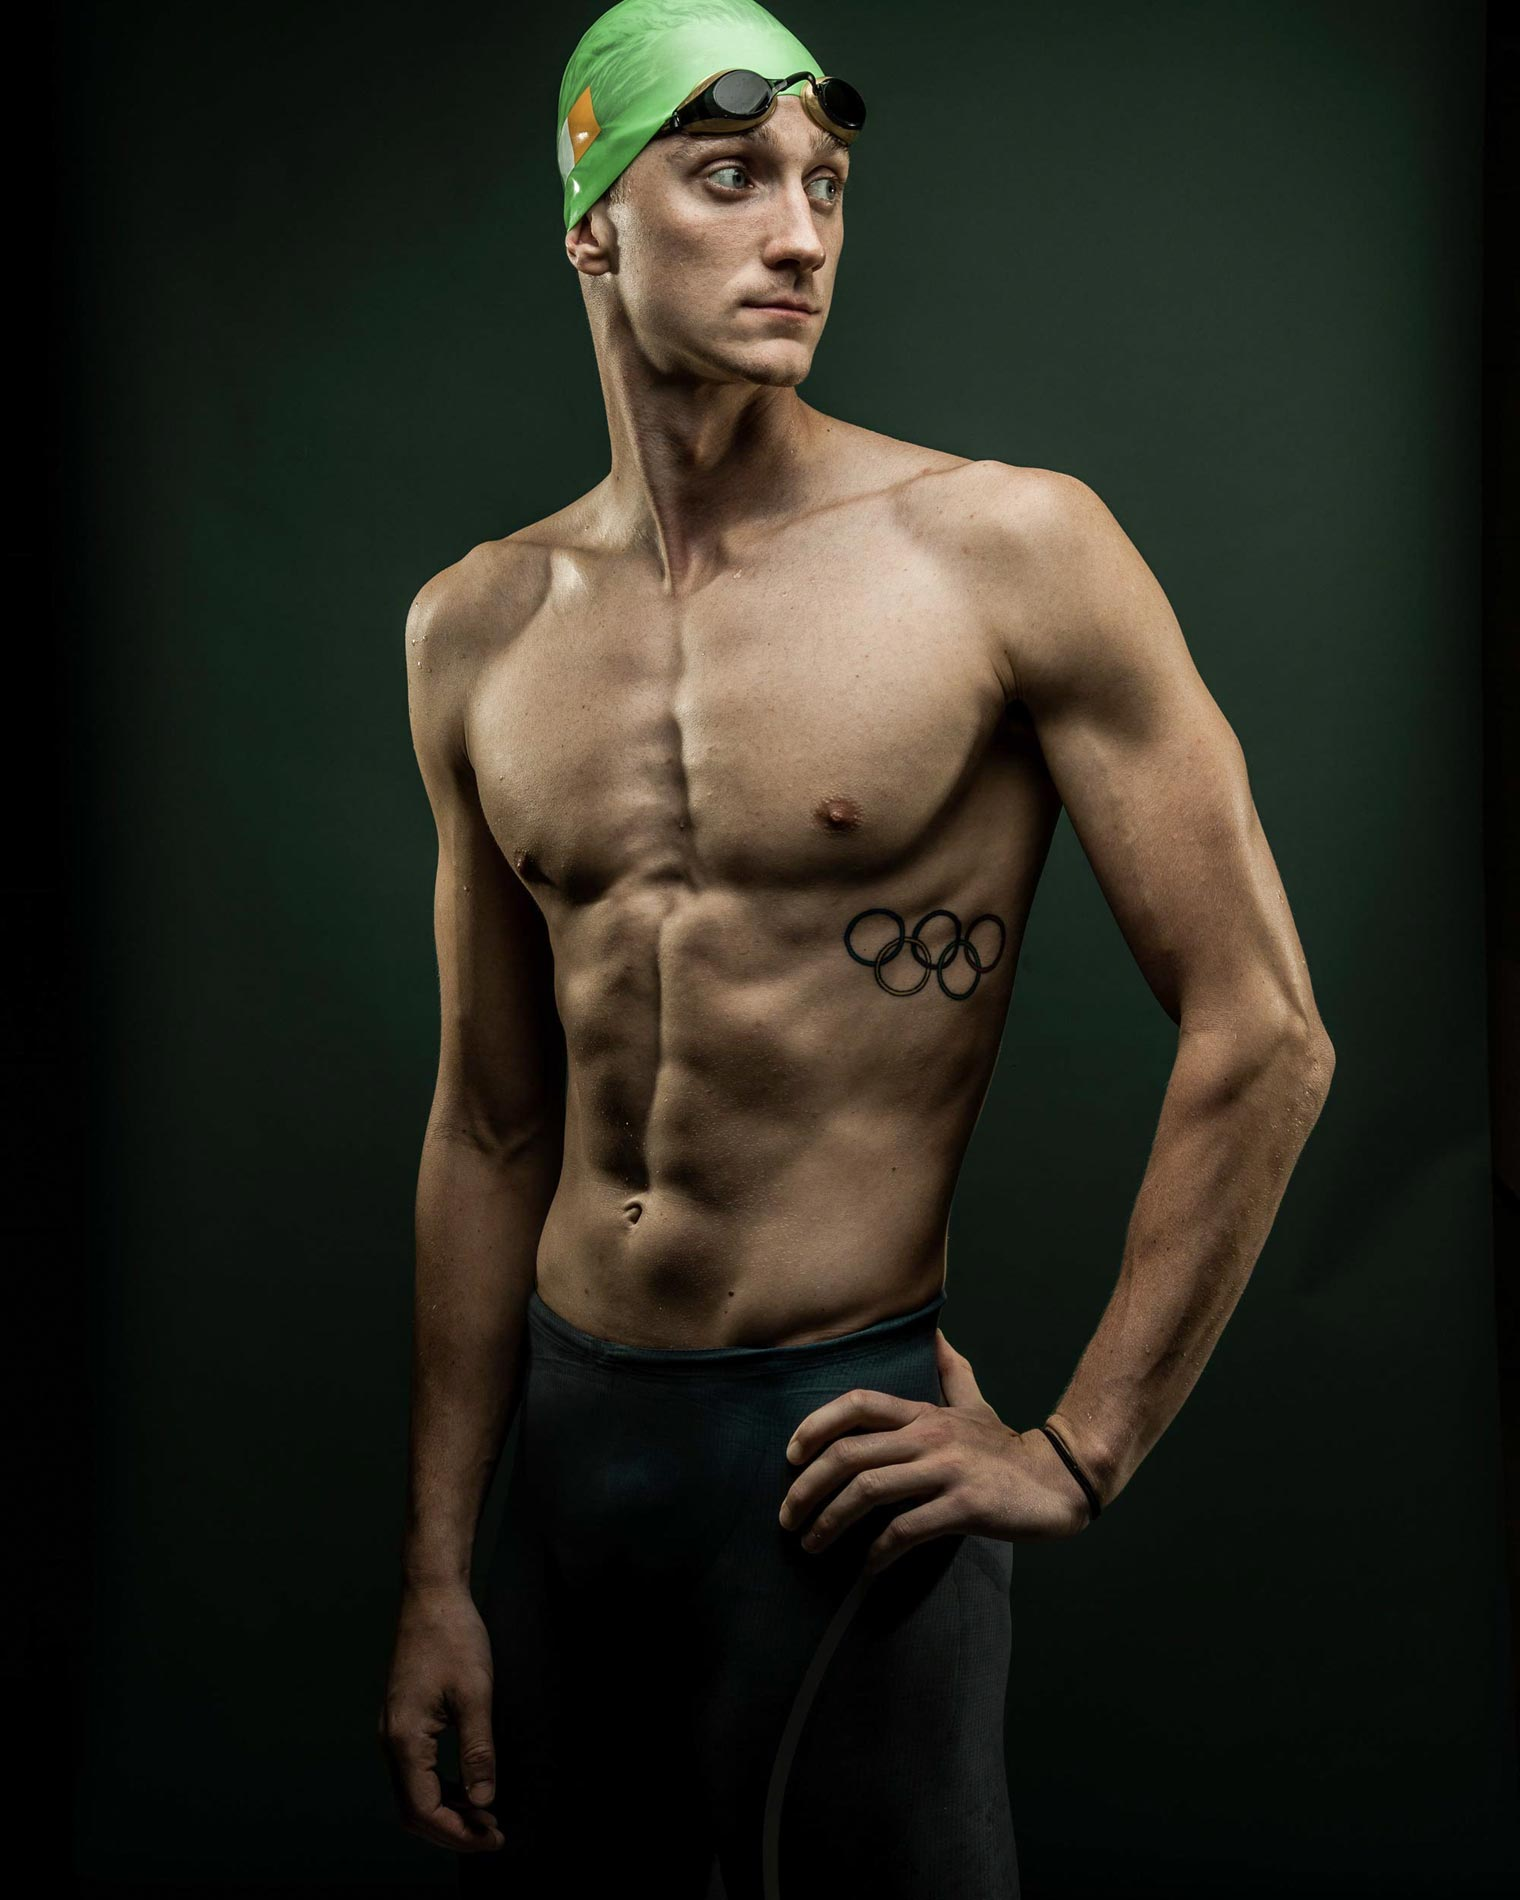 Shane Ryan PSU 2016 Olympic Swimmer for Ireland